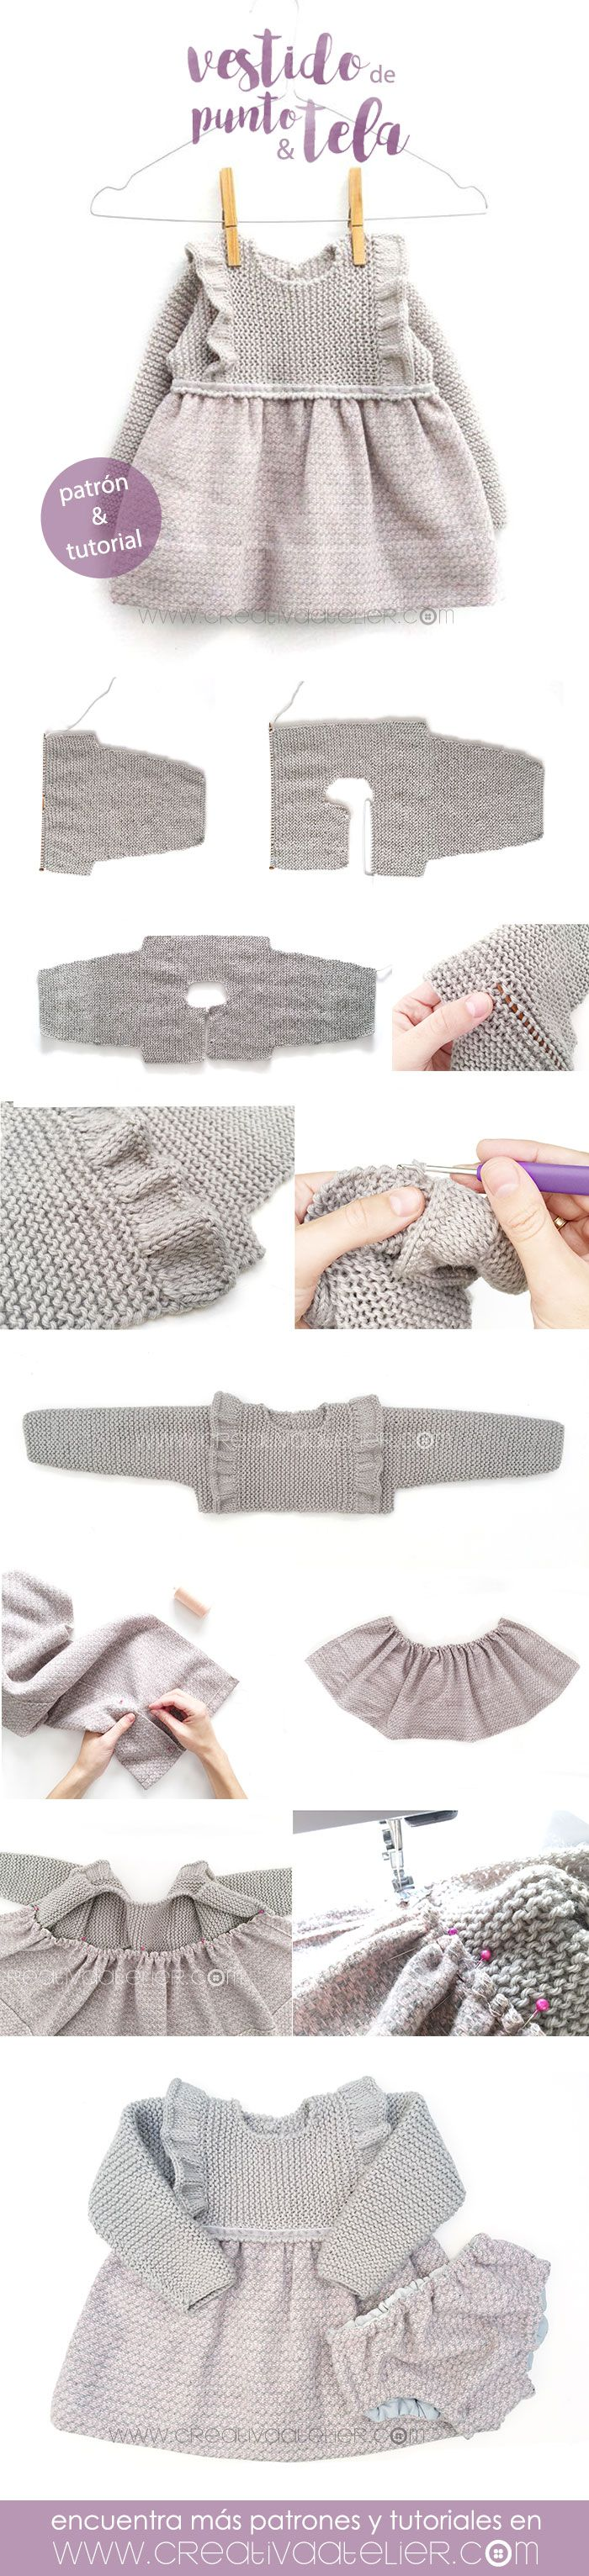 60 best Bebe images on Pinterest | Baby knitting, Knit crochet and ...